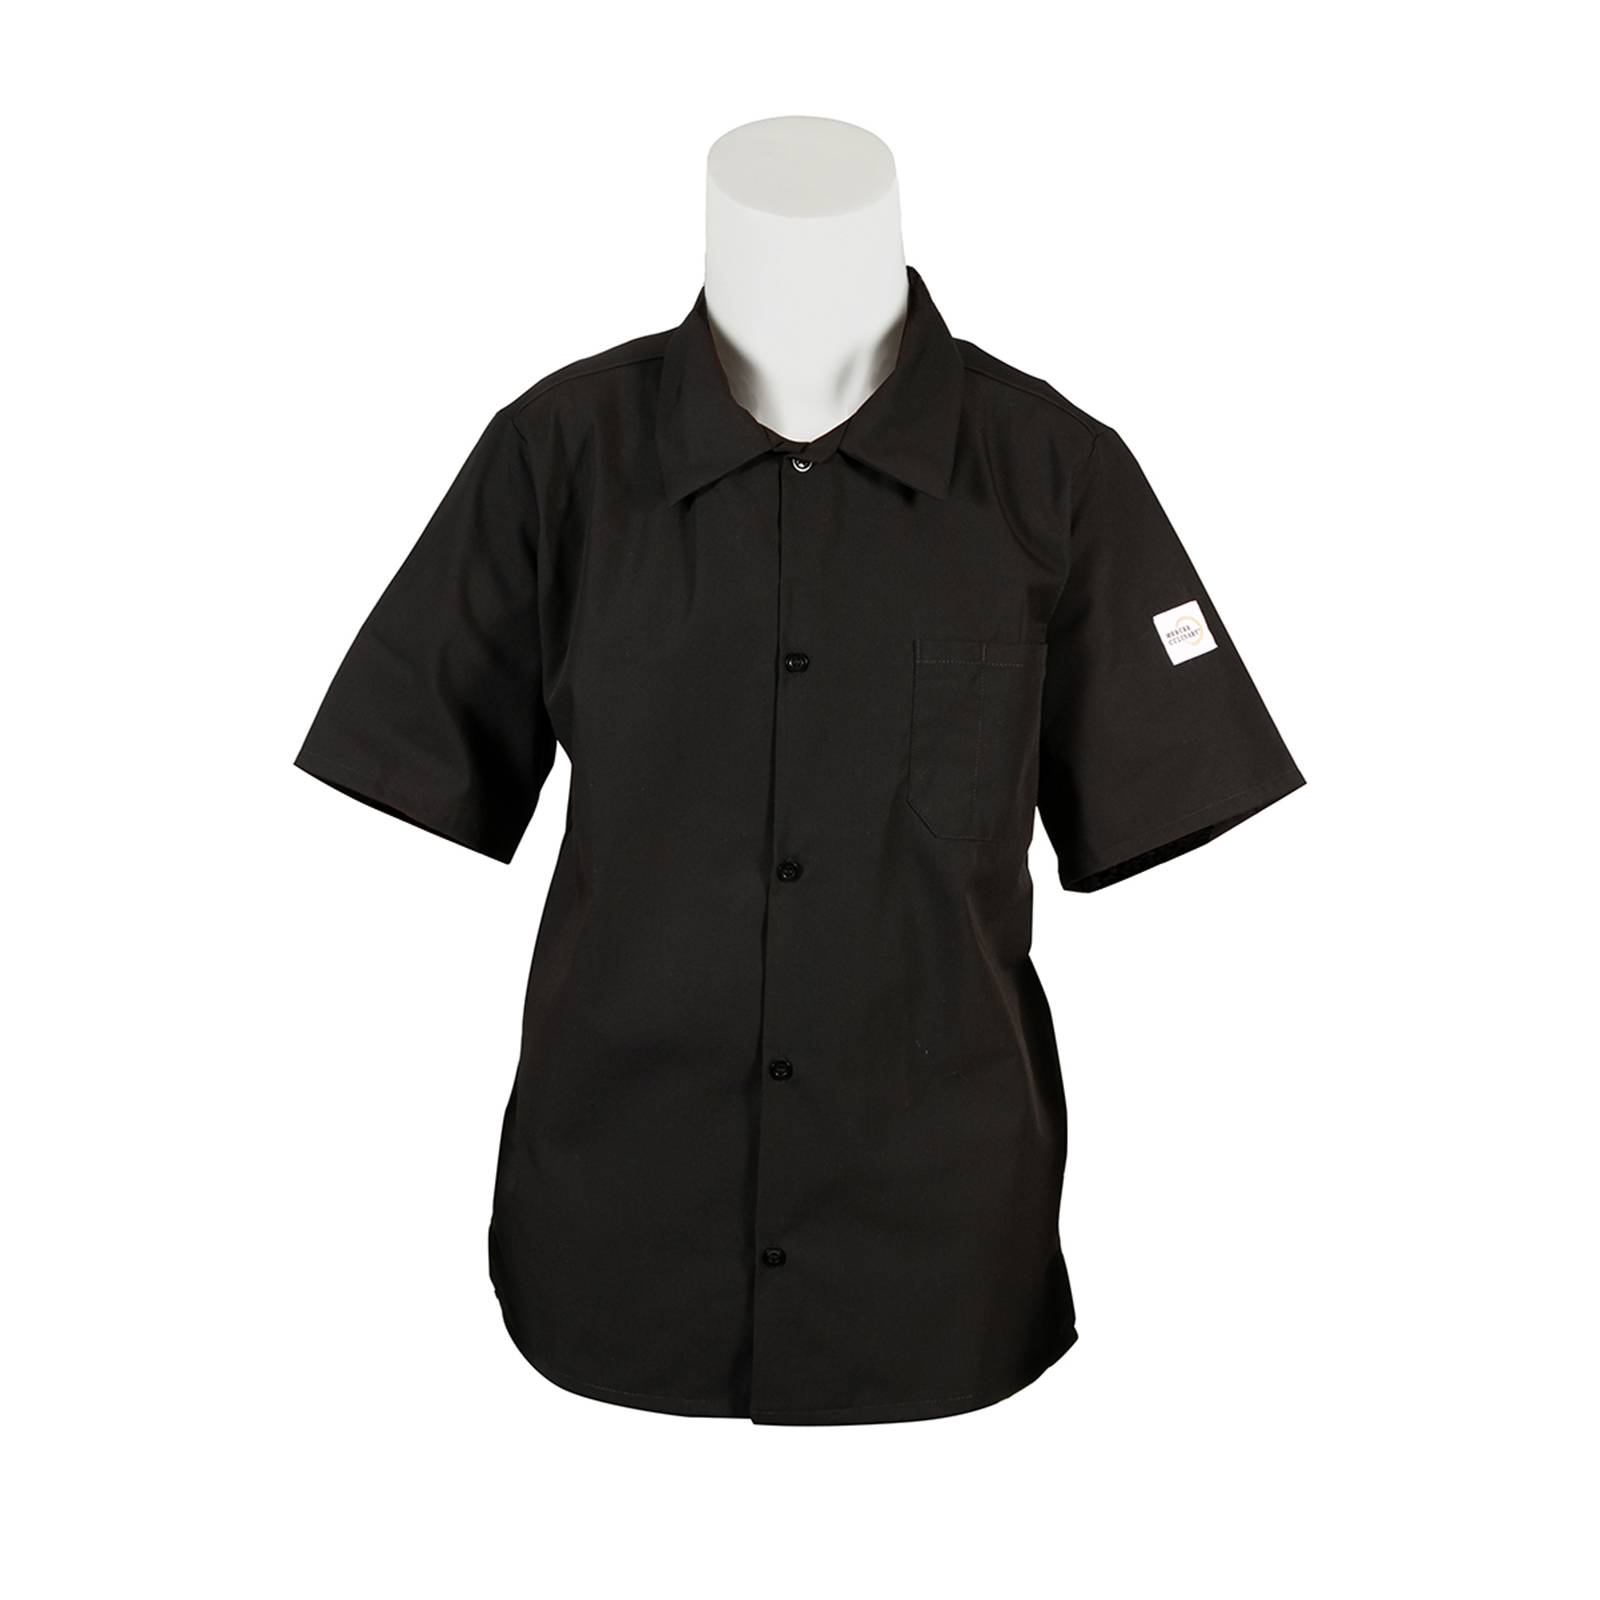 Mercer Culinary M60200BK6X cook's shirt